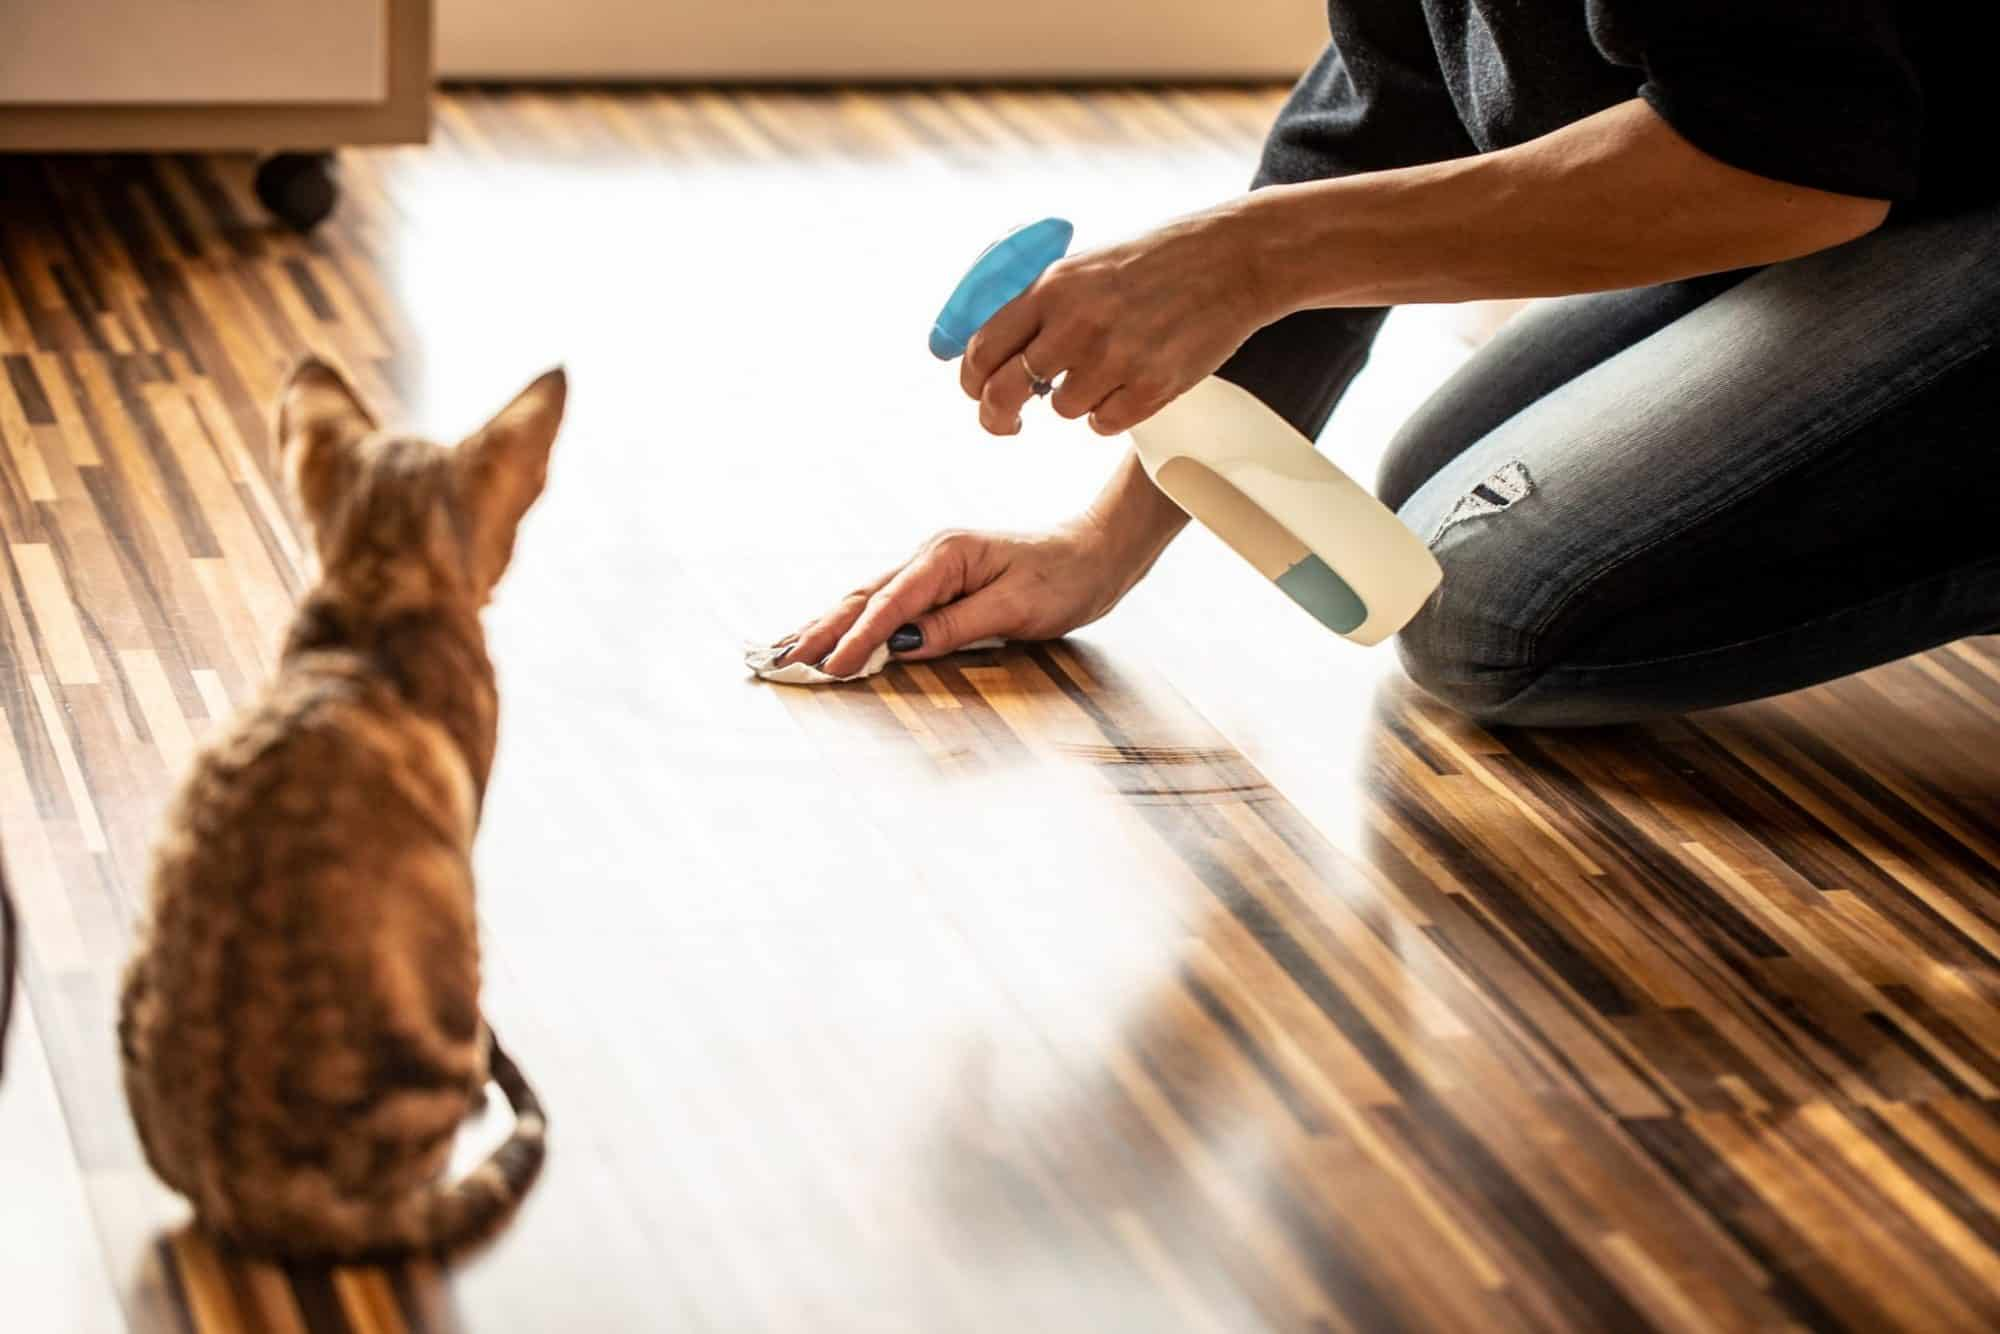 A cat watches a woman clean the floor.